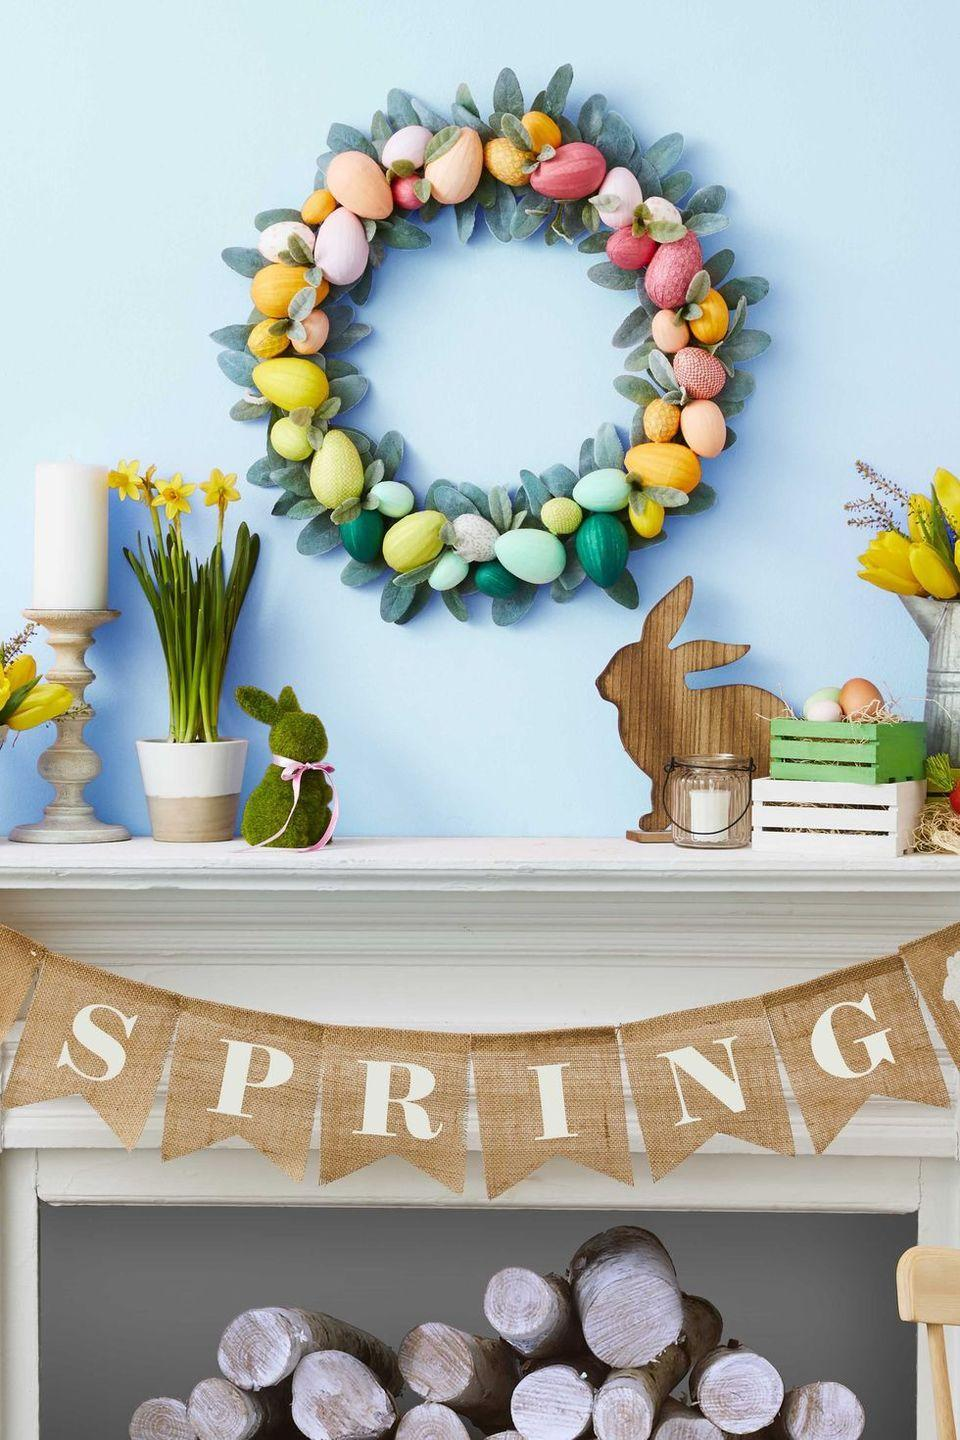 """<p>This rainbow Easter egg wreath is the perfect craft to use as decoration in your living room or to brighten up your front door. </p><p><strong><em><a href=""""https://www.womansday.com/home/crafts-projects/g2886/diy-easter-wreaths/?slide=6"""" rel=""""nofollow noopener"""" target=""""_blank"""" data-ylk=""""slk:Get the Easter Egg Wreath tutorial."""" class=""""link rapid-noclick-resp"""">Get the Easter Egg Wreath tutorial. </a></em></strong></p>"""